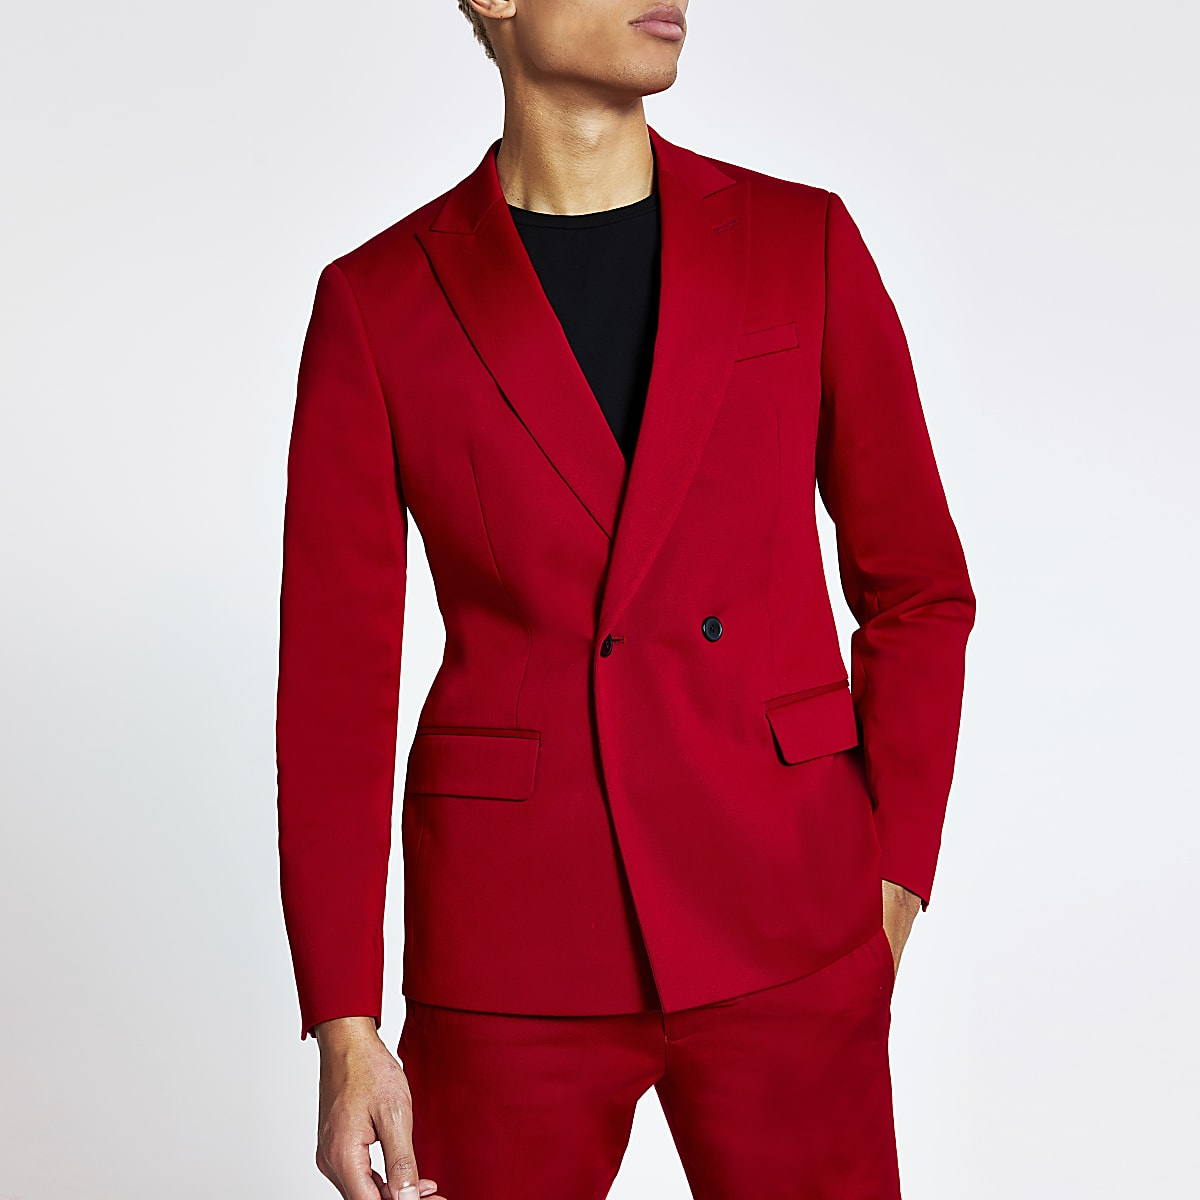 Red double breasted skinny suit jacket